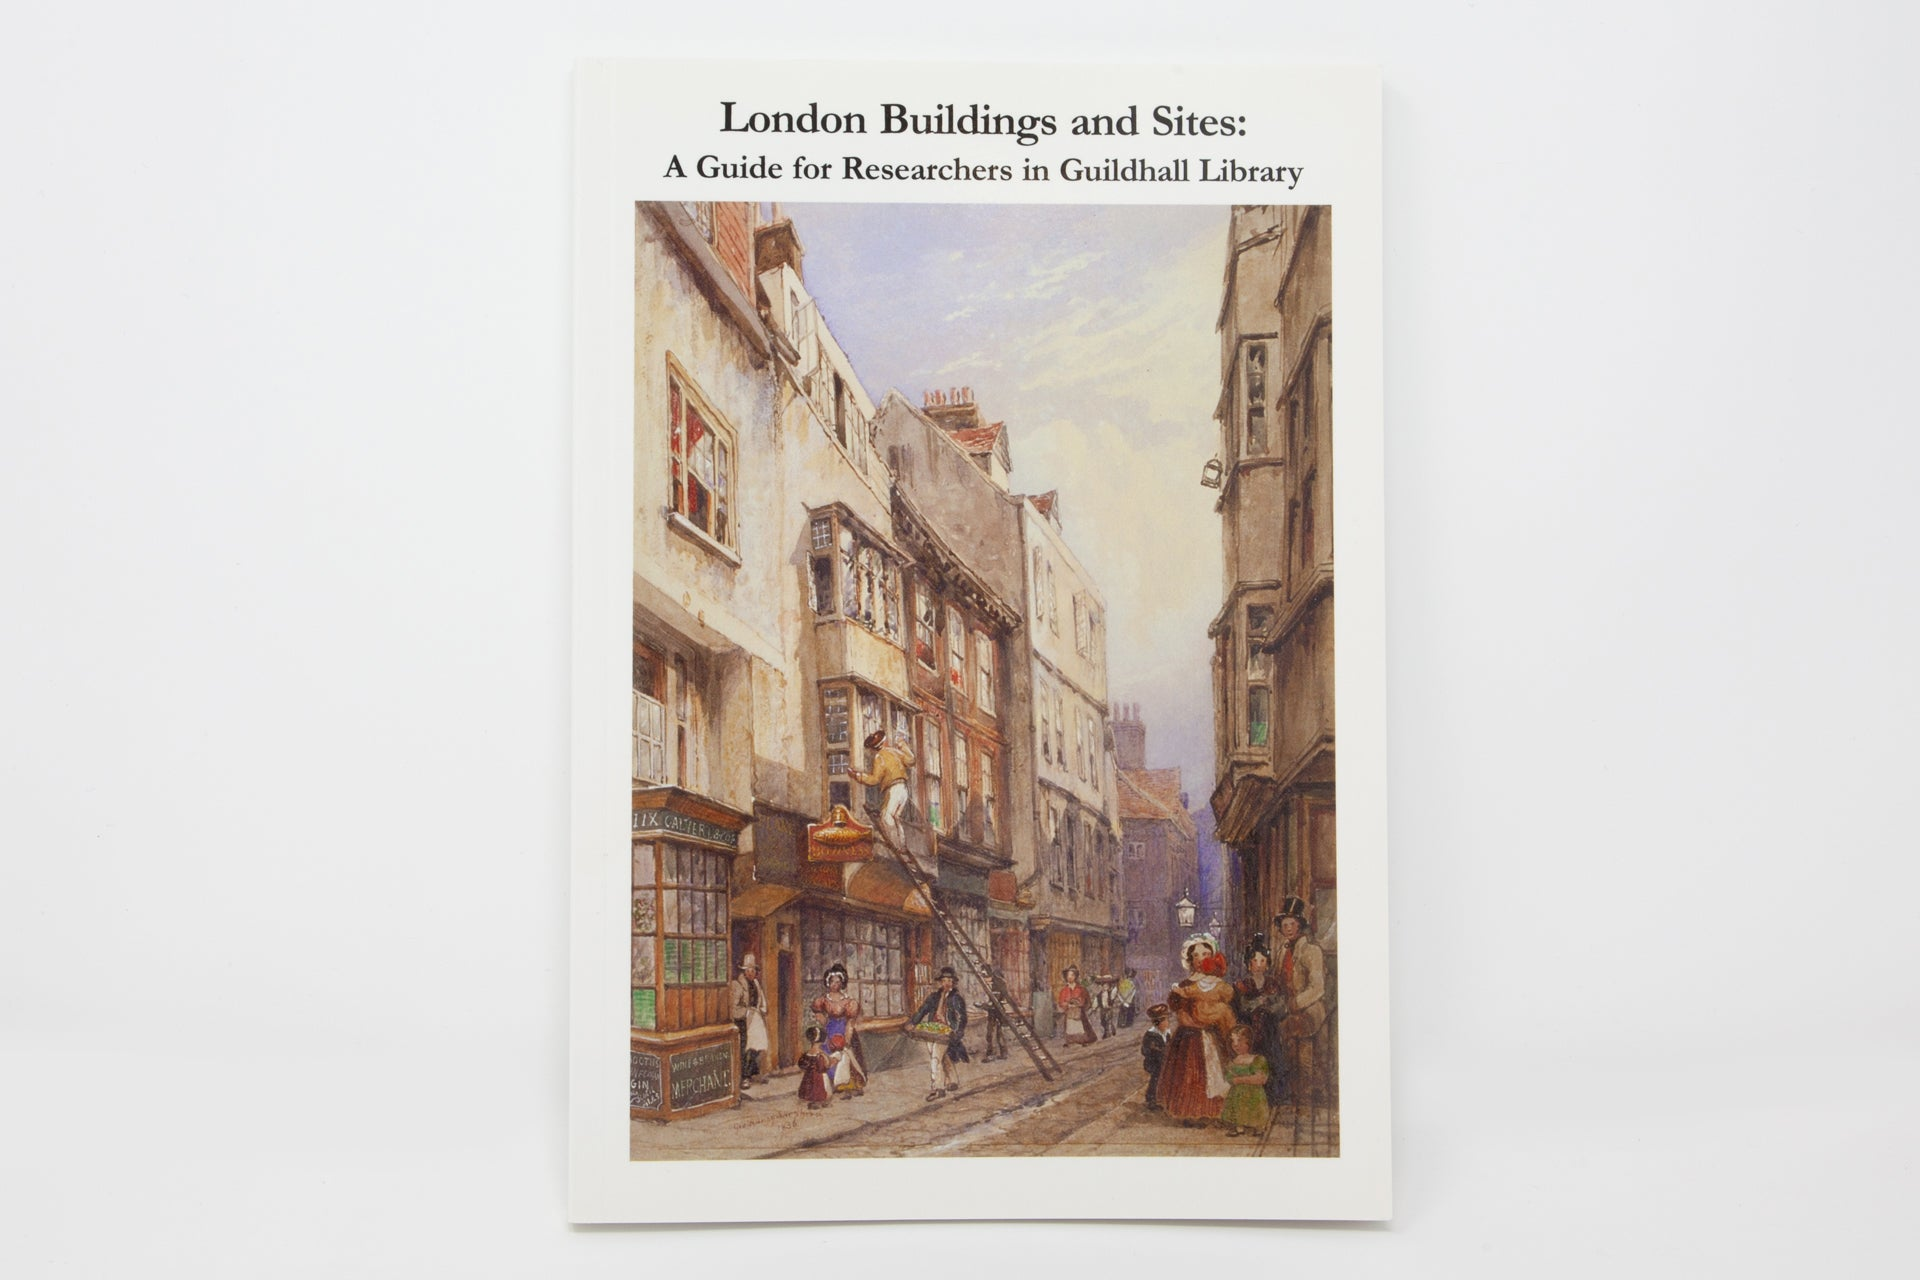 London Buildings and Sites: A Guide for Researchers in Guildhall Library